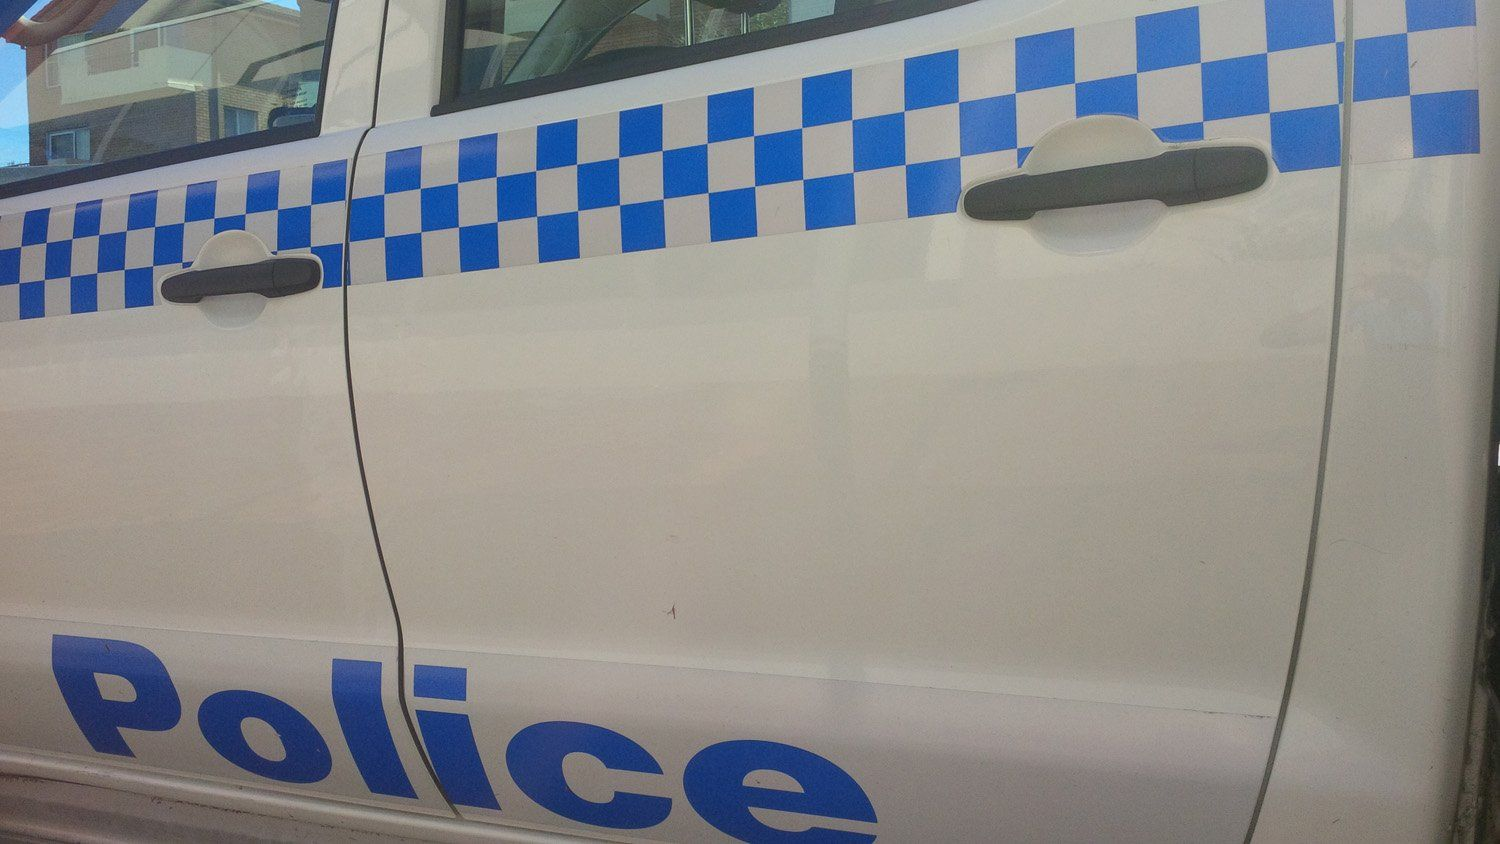 Charges laid over drug syndicate, NSW - Mirage News